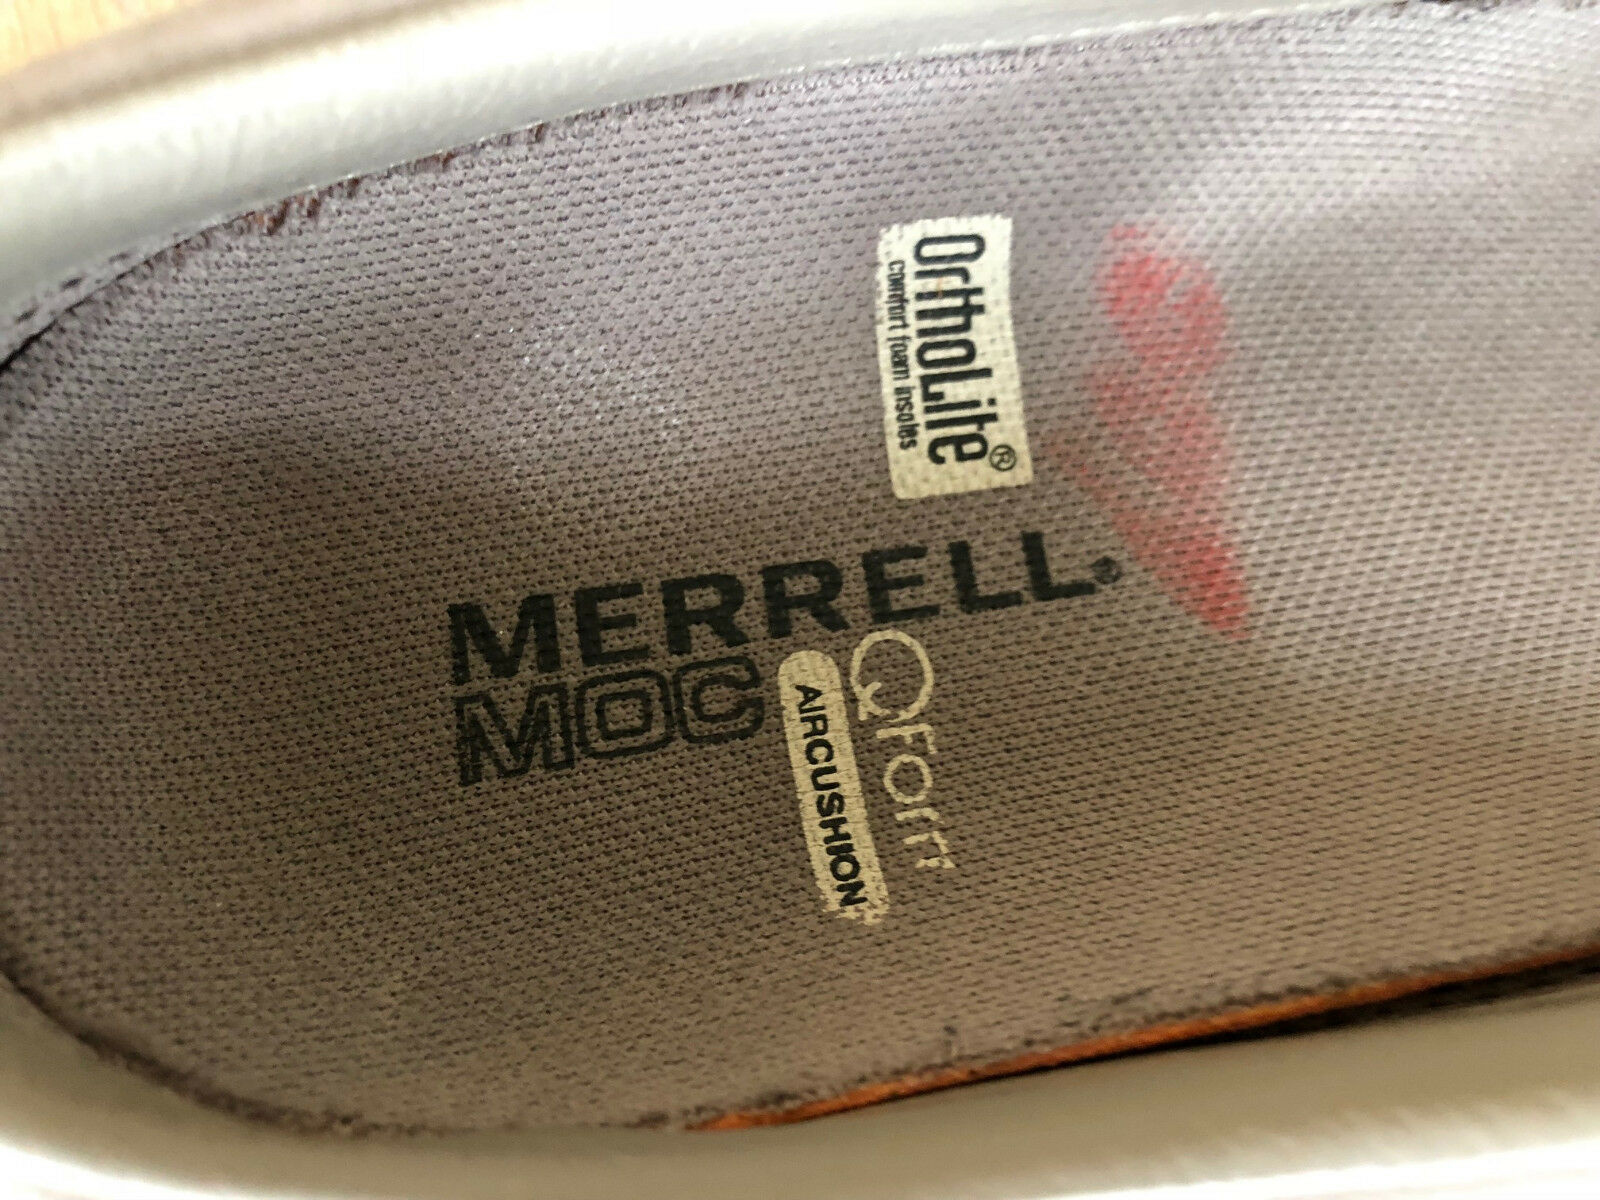 Merrell Womens Sz 7 Mary Jane Air Cushion and 49 similar items